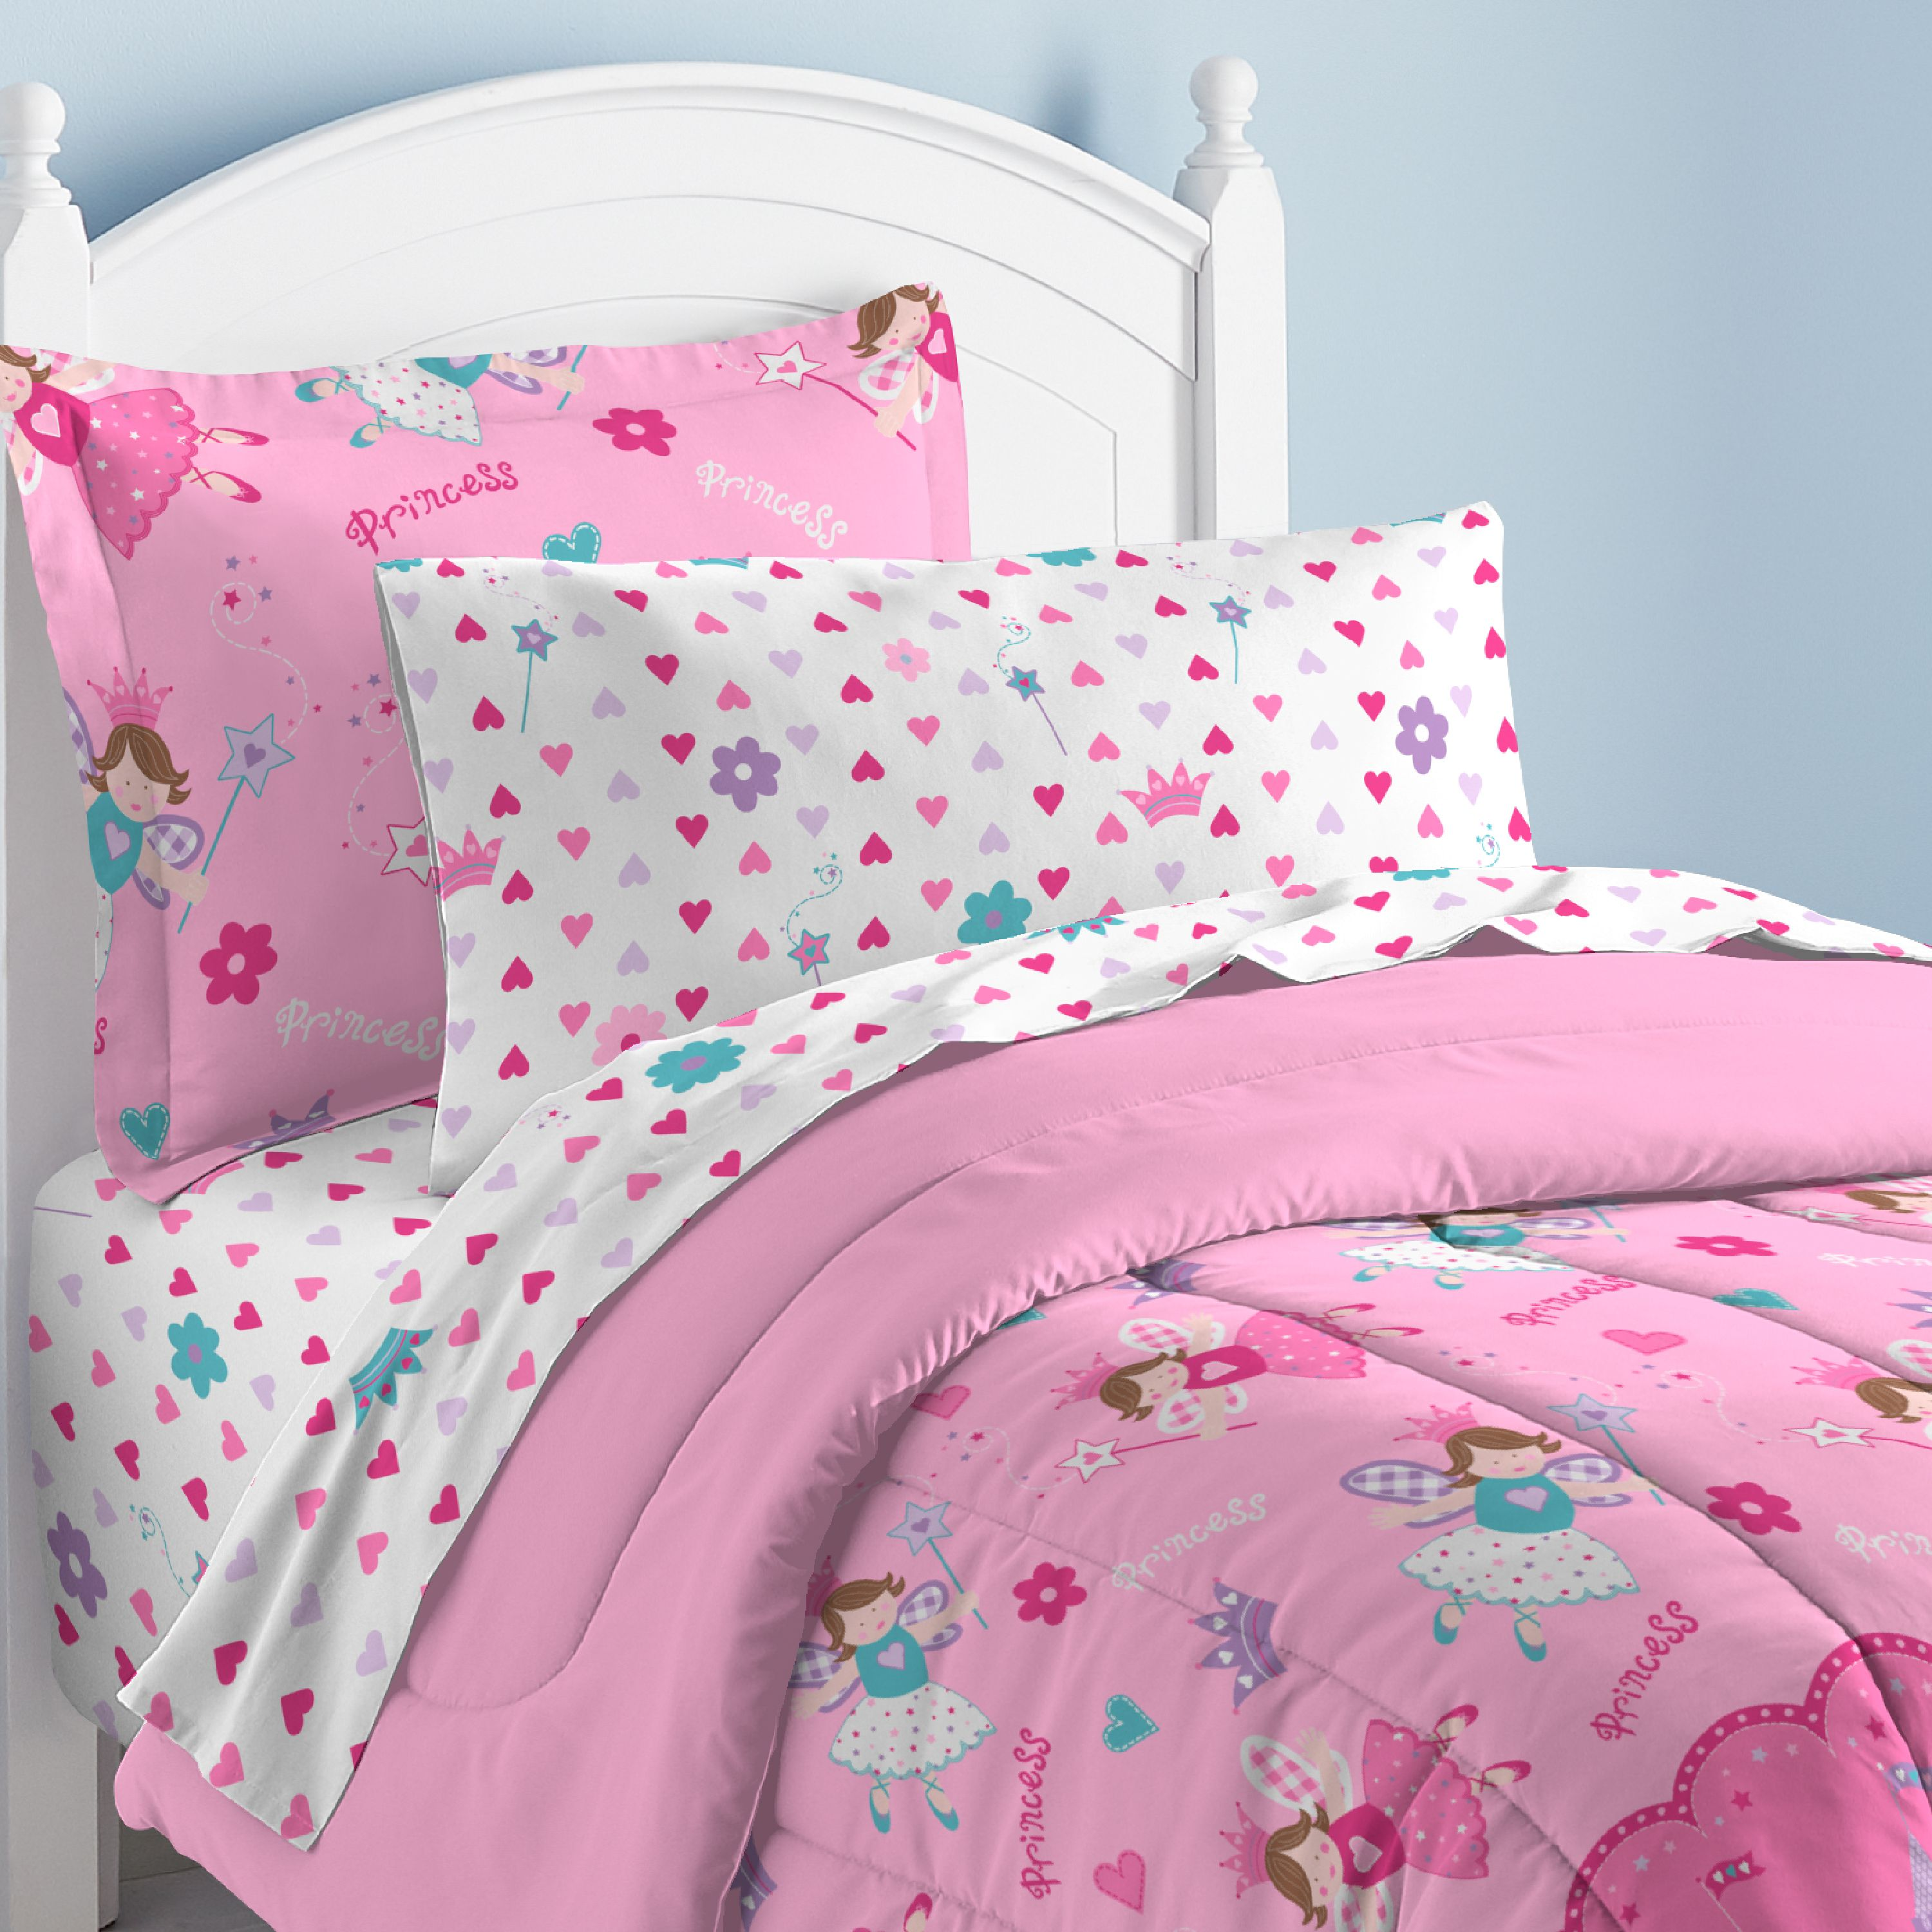 Dream Factory Magical Princess Mini Bed in a Bag Bedding Set